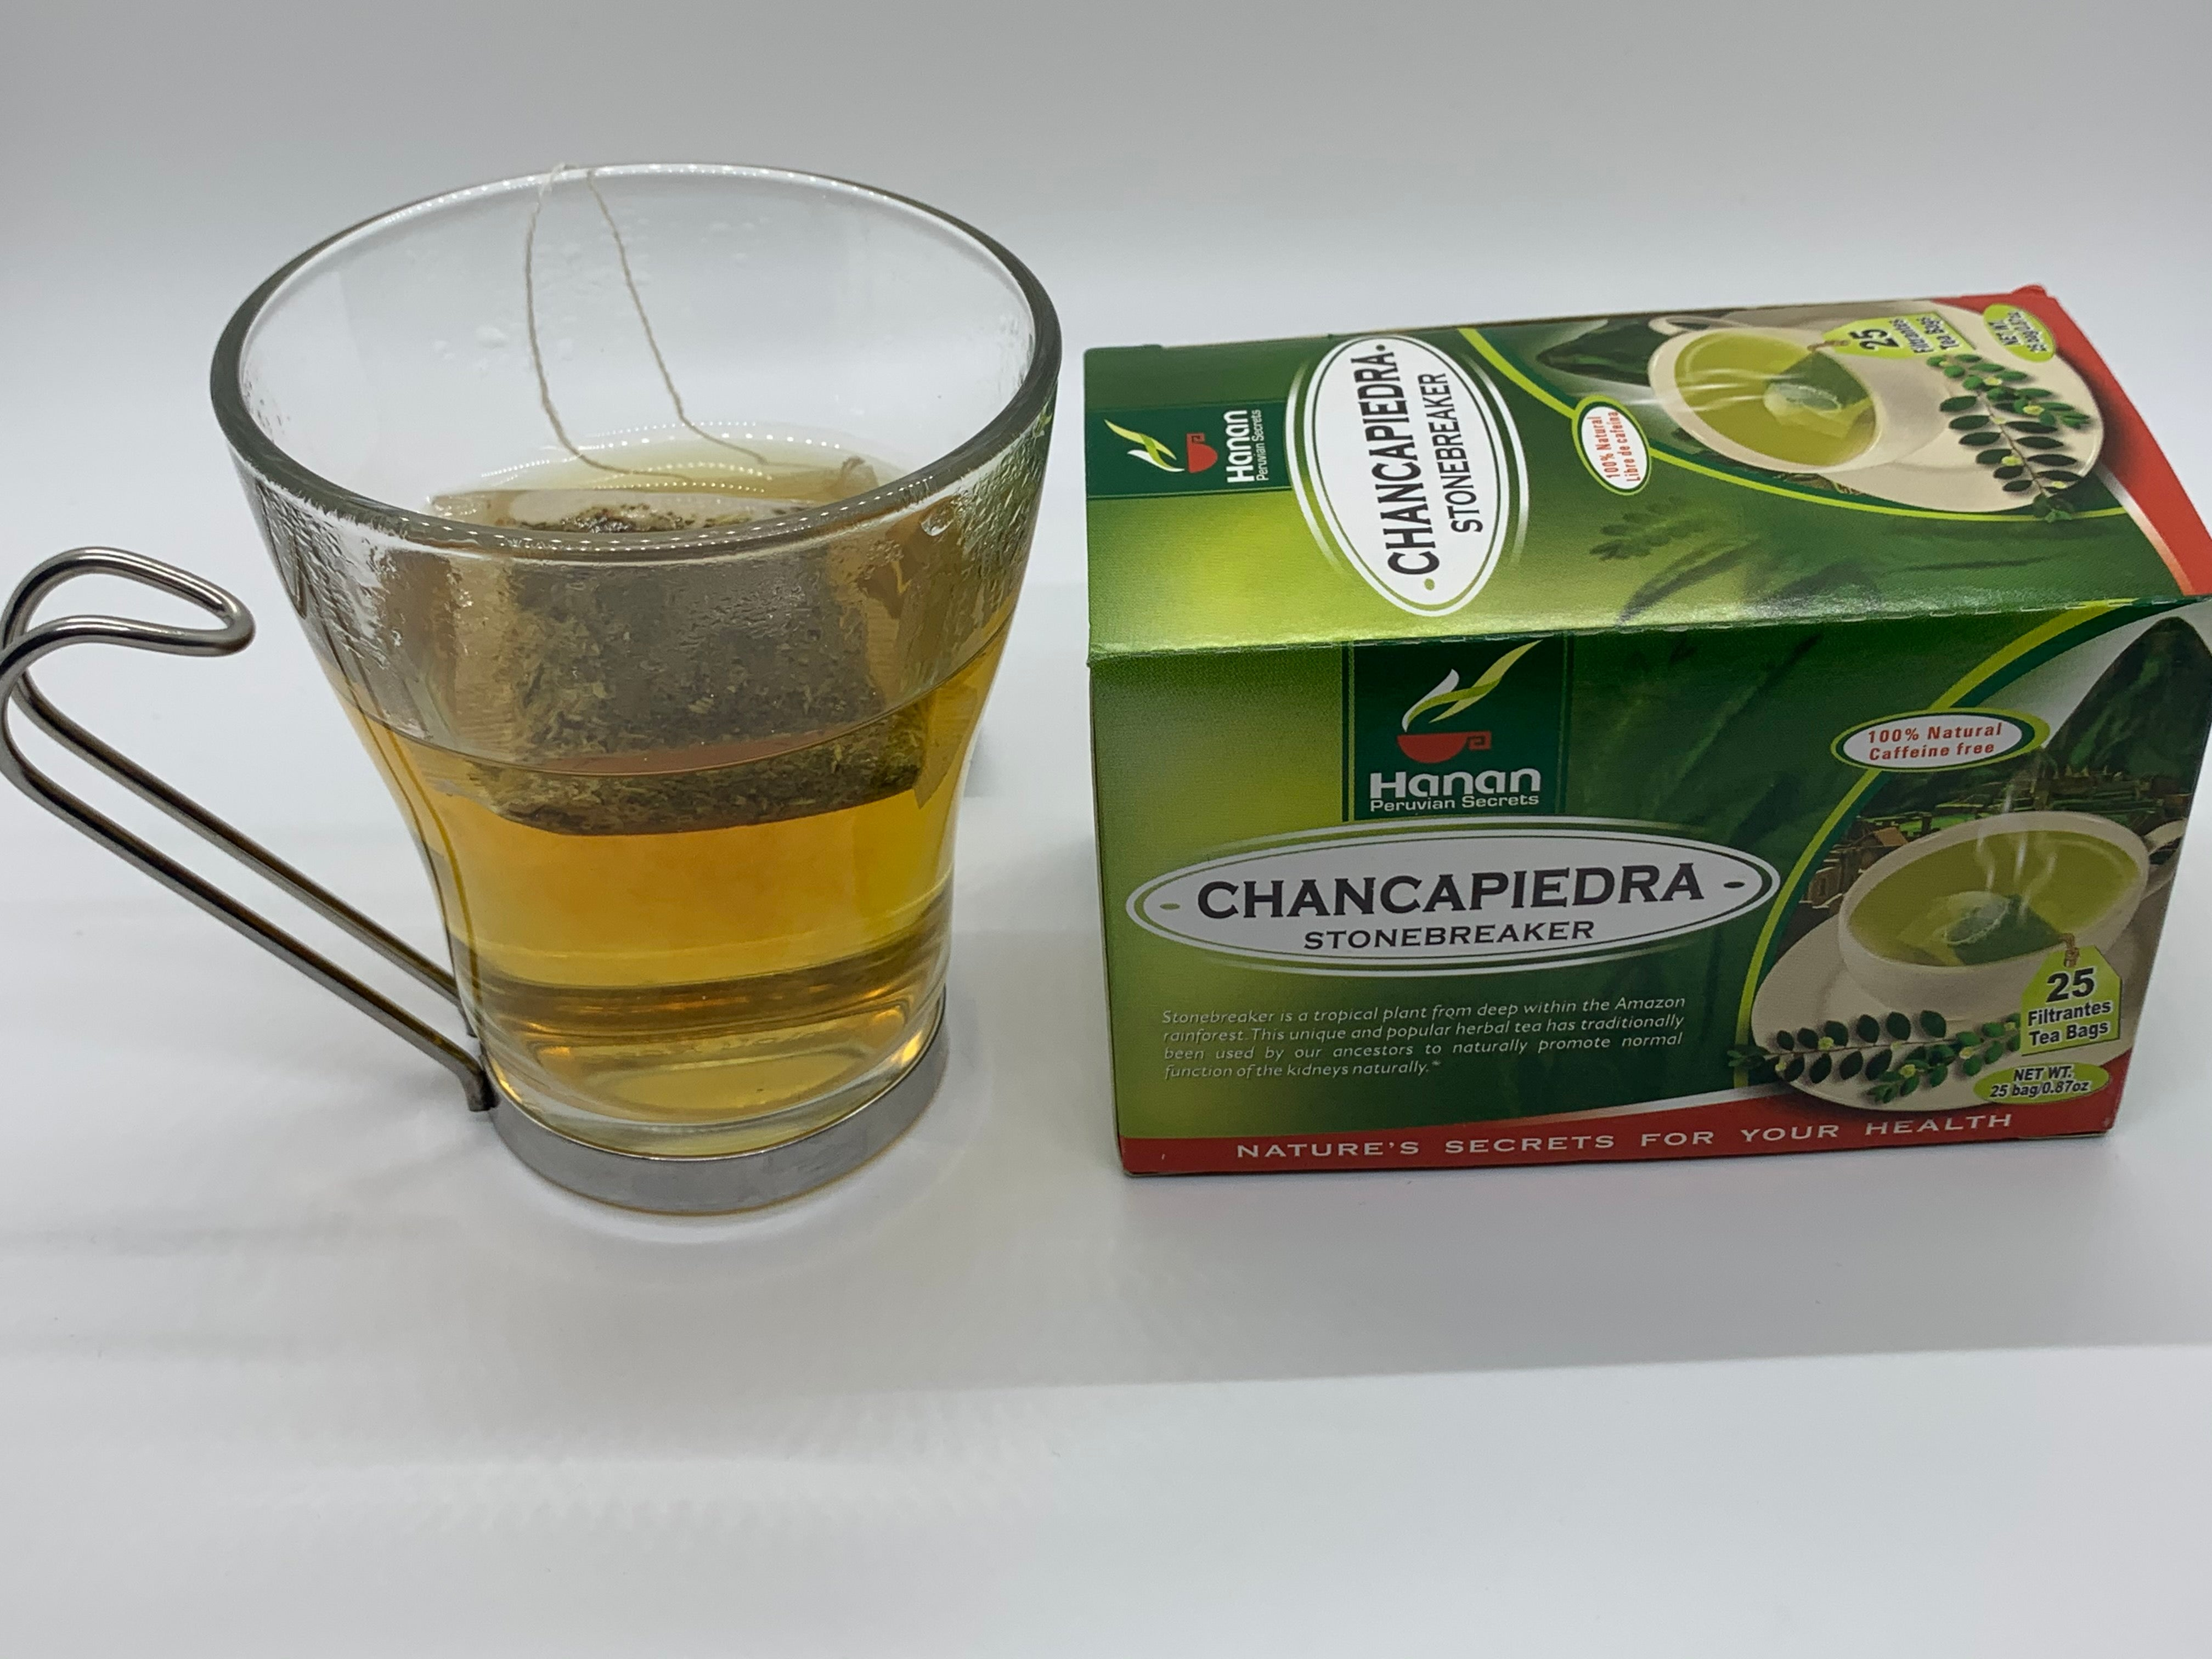 Chanca Piedra Tea (Stonebreaker) - 25 Teabags - for Kidney and Urinary Health